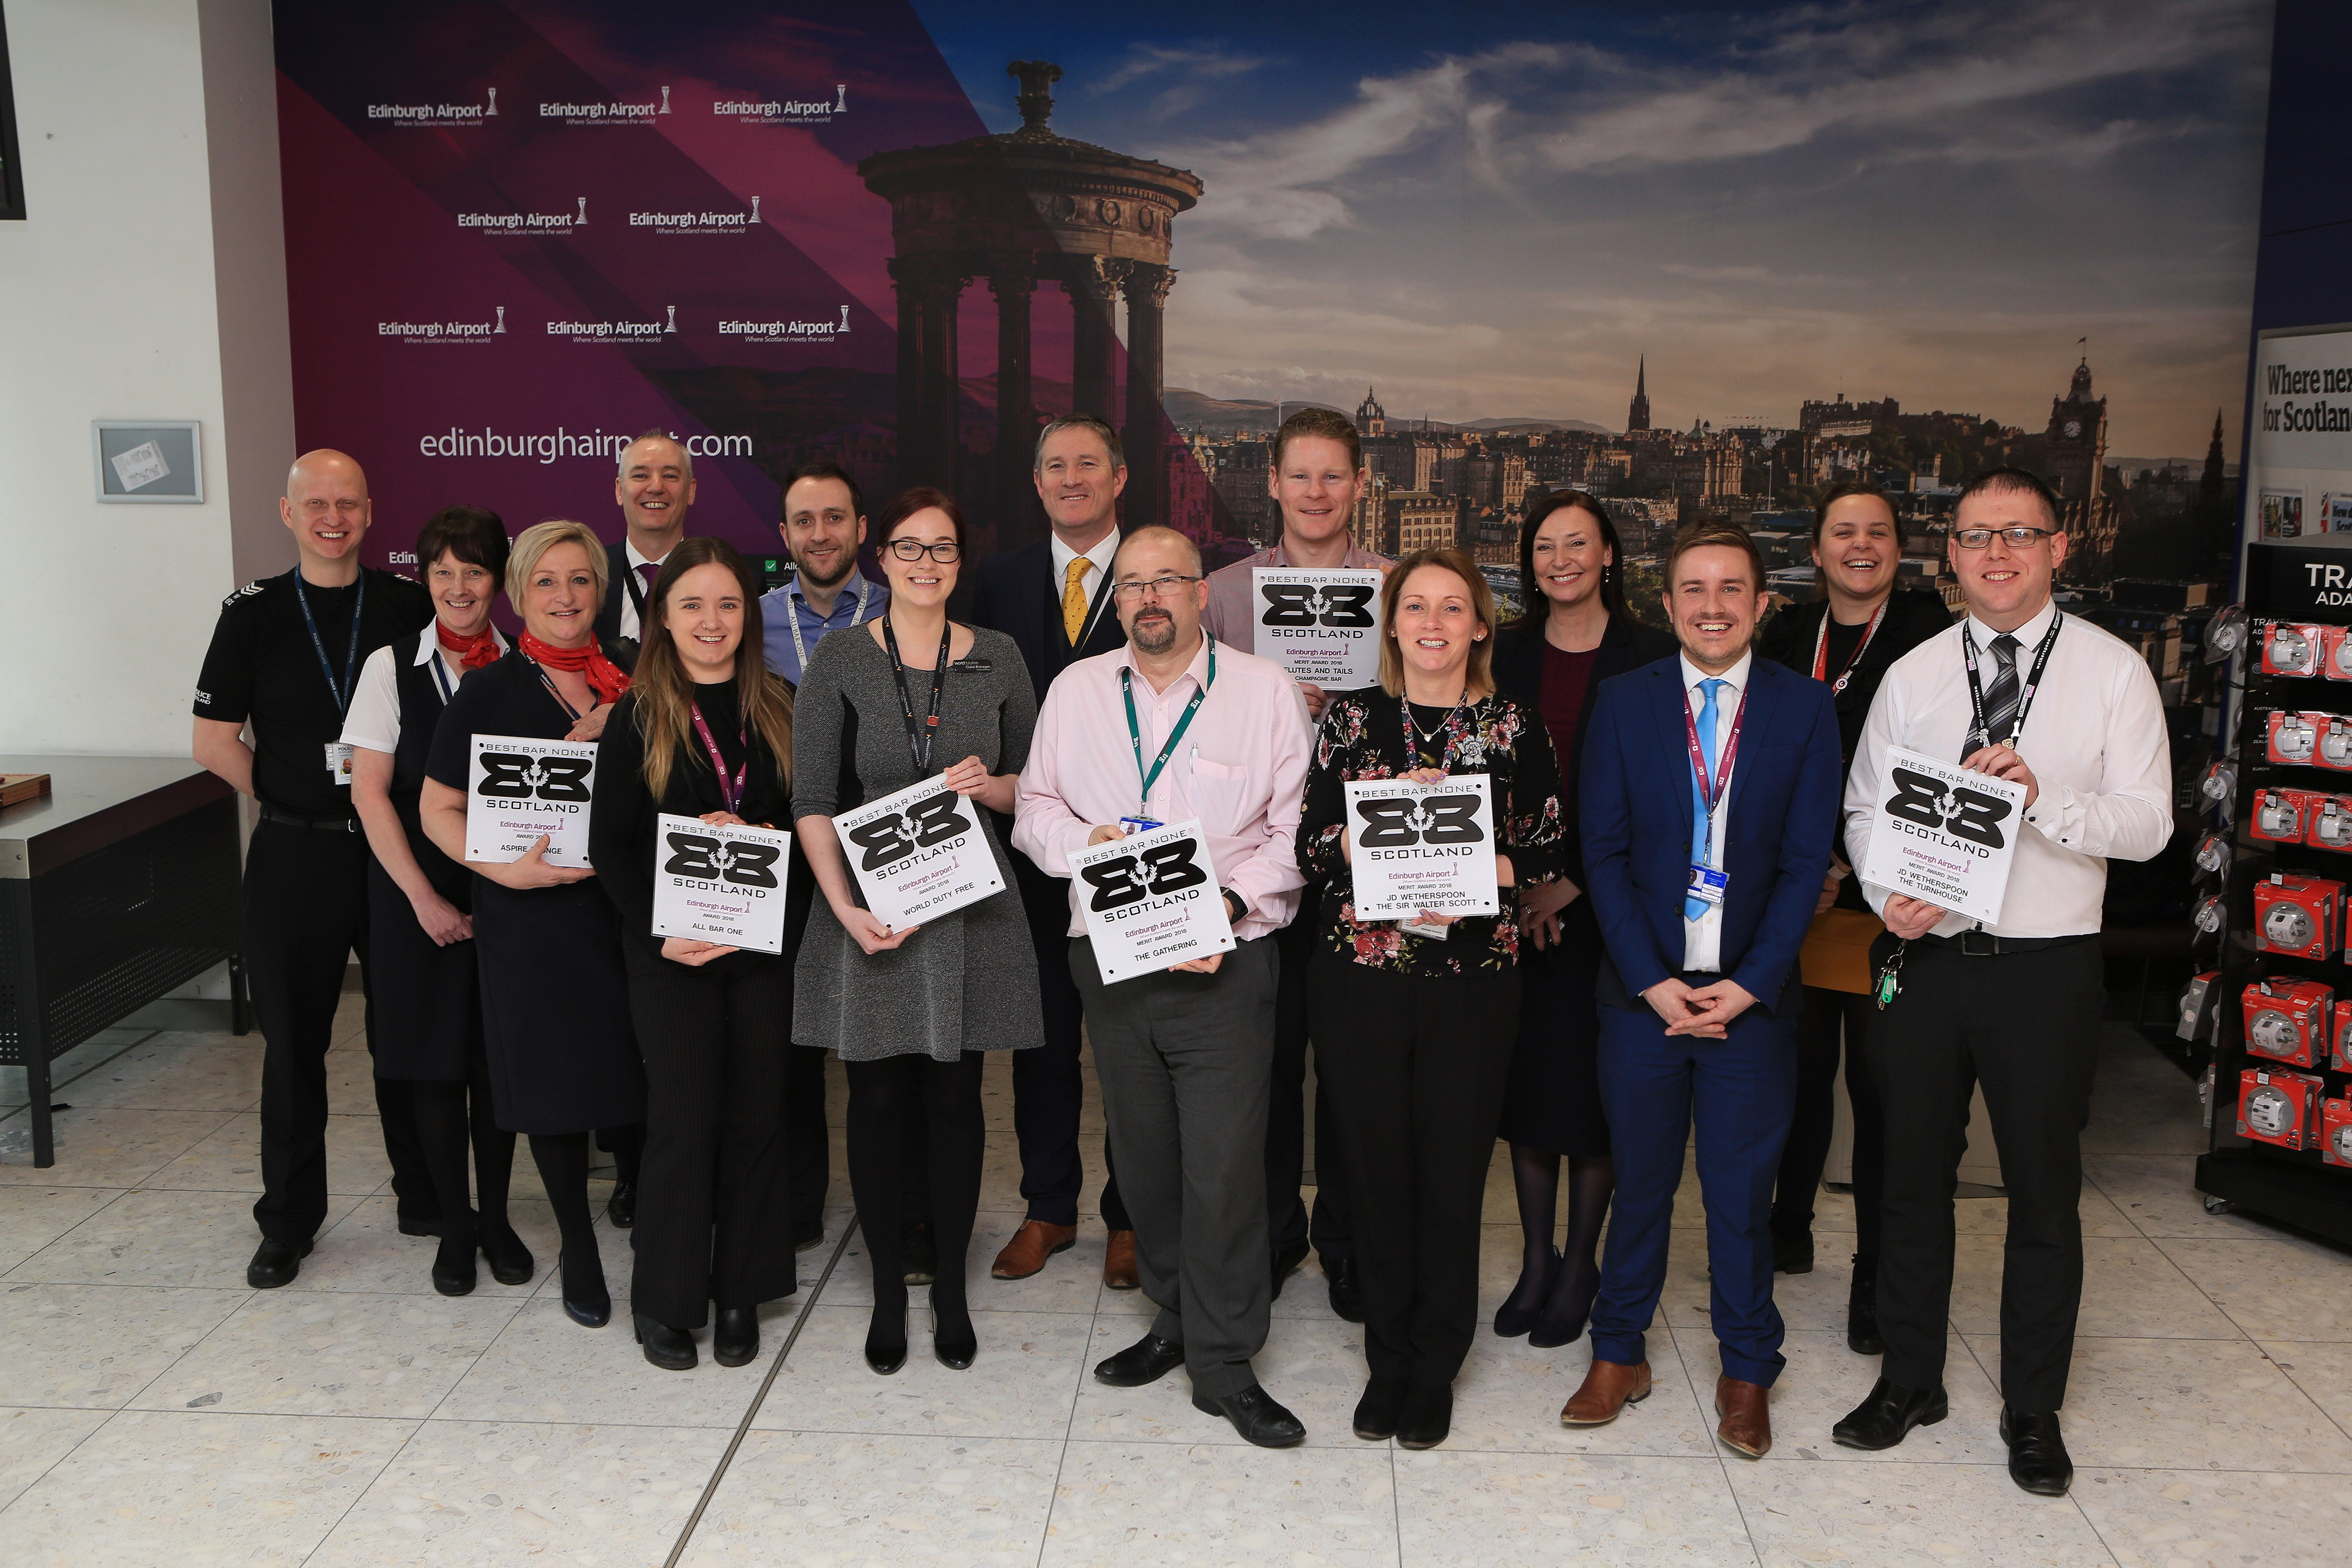 First Awards for Edinburgh Airport